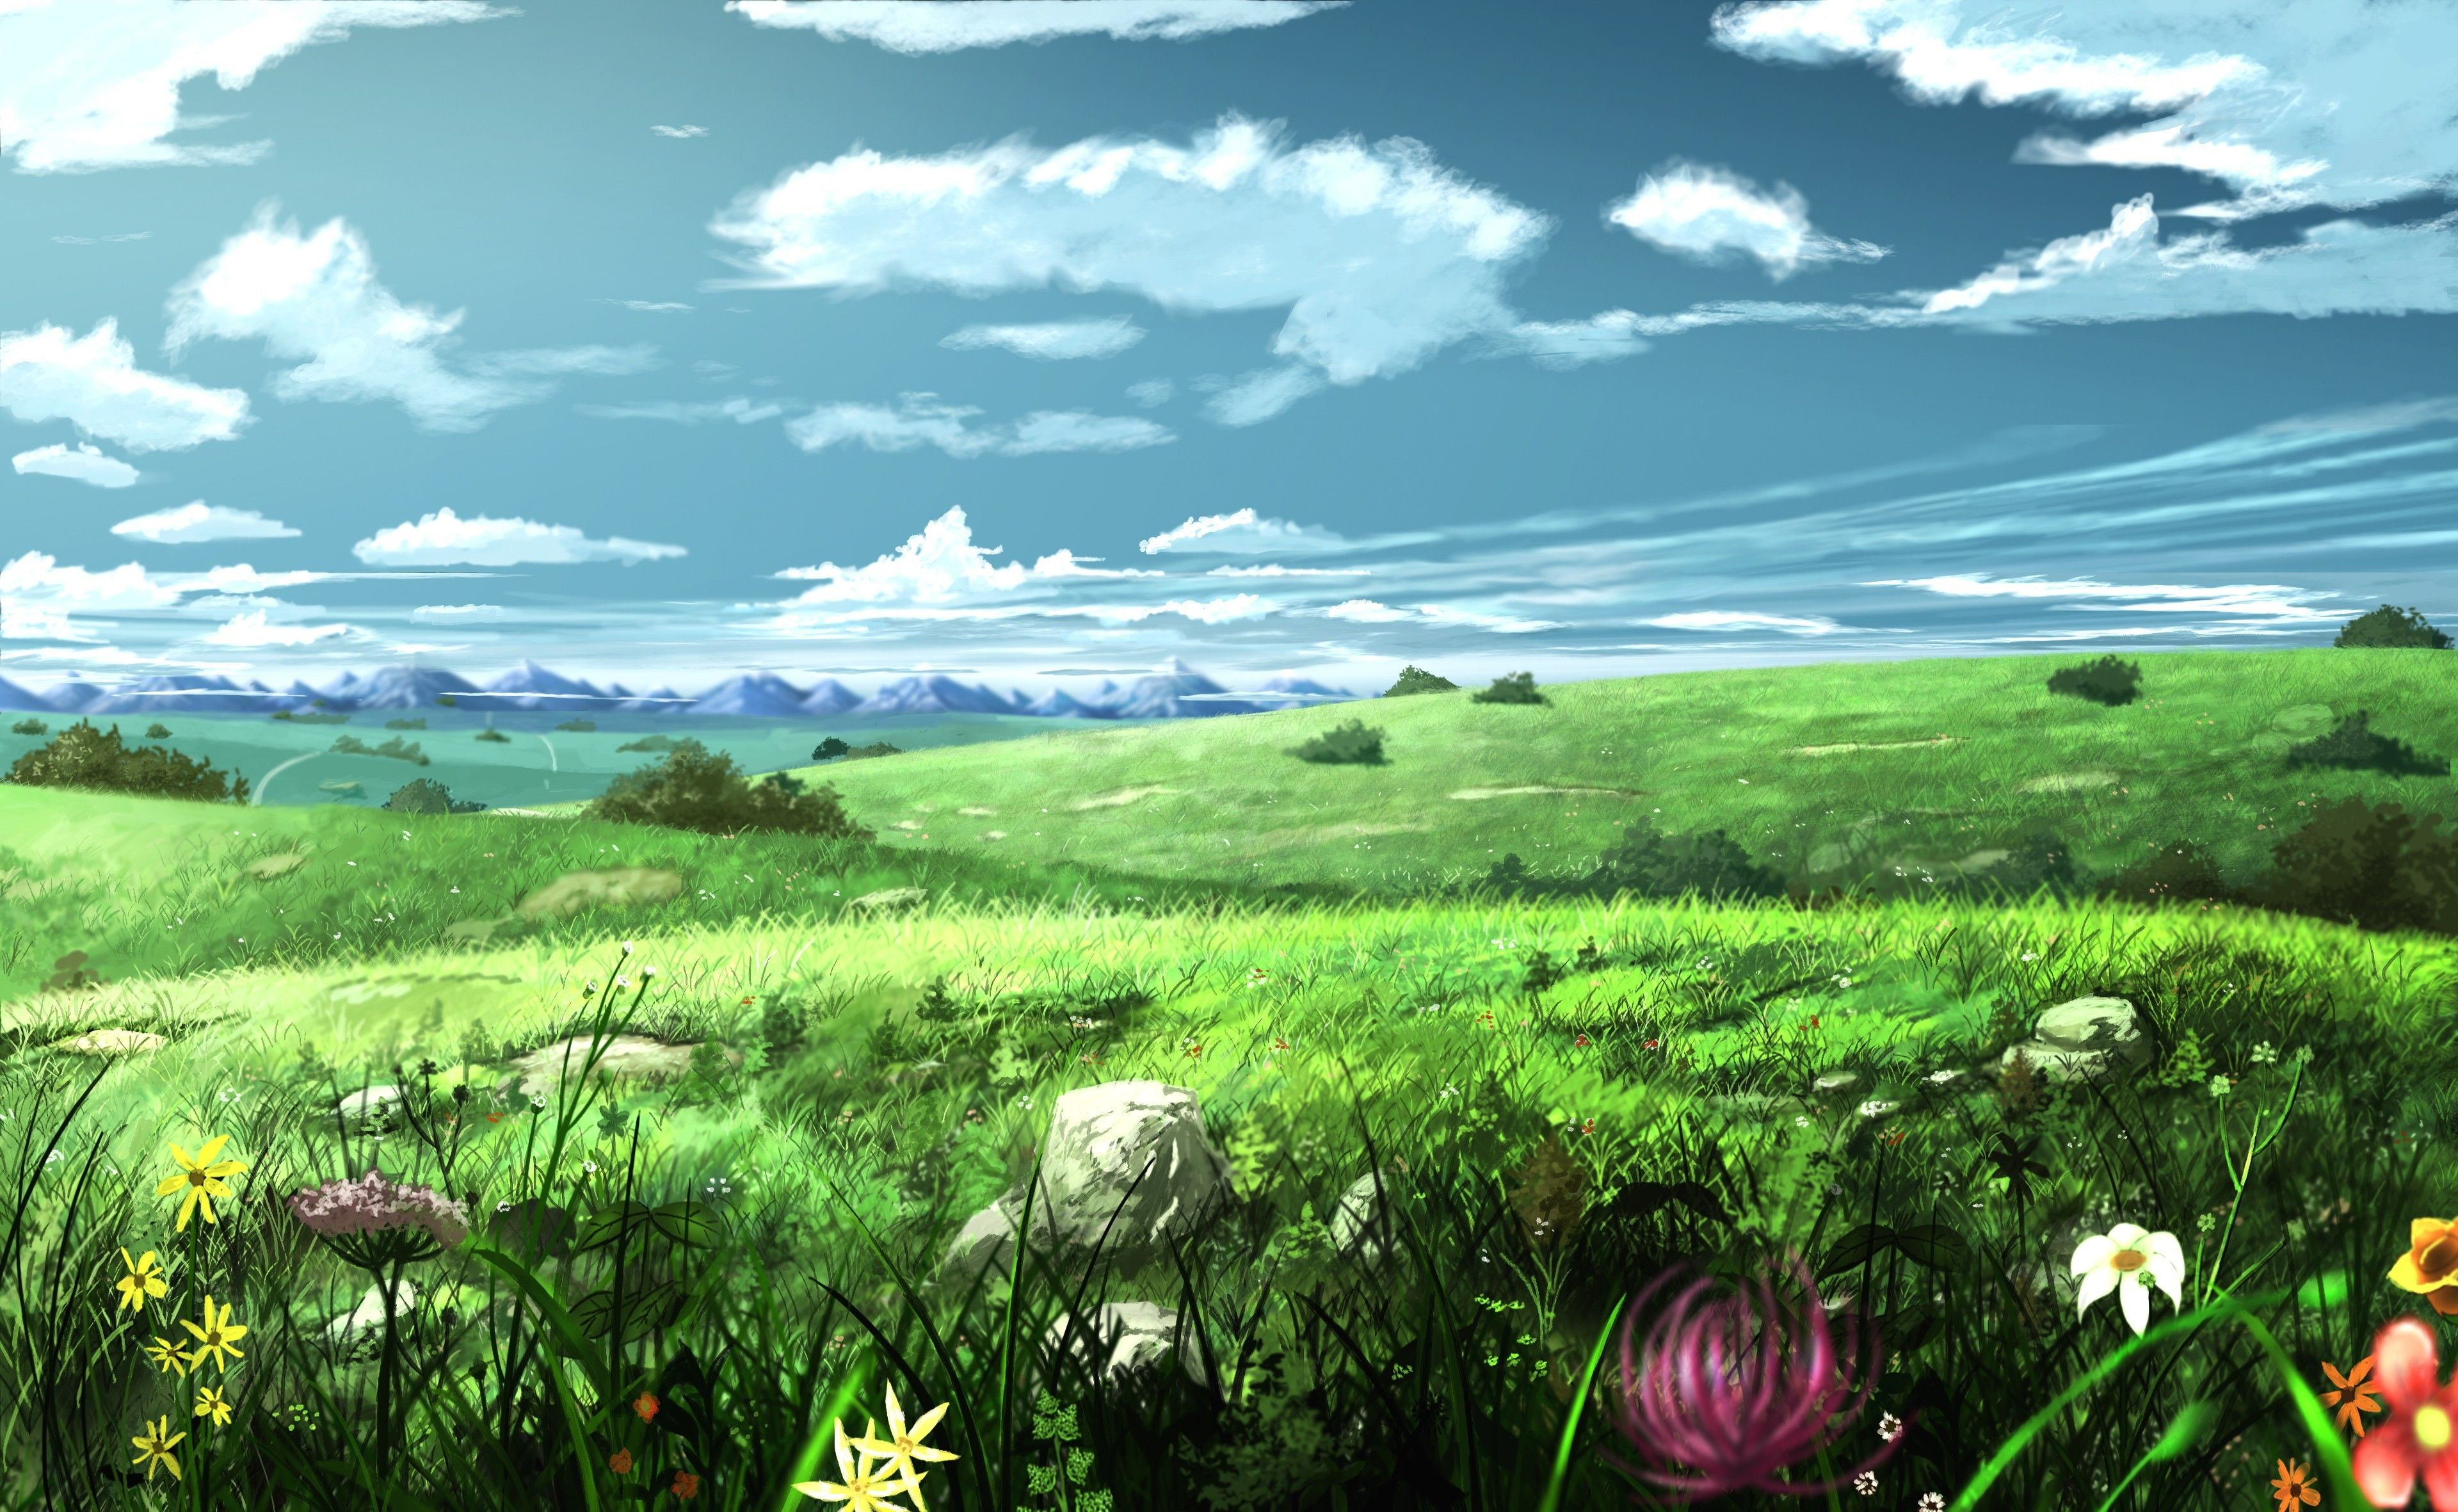 Image Result For Anime Field Background Landscape Wallpaper Anime Scenery Anime Scenery Wallpaper